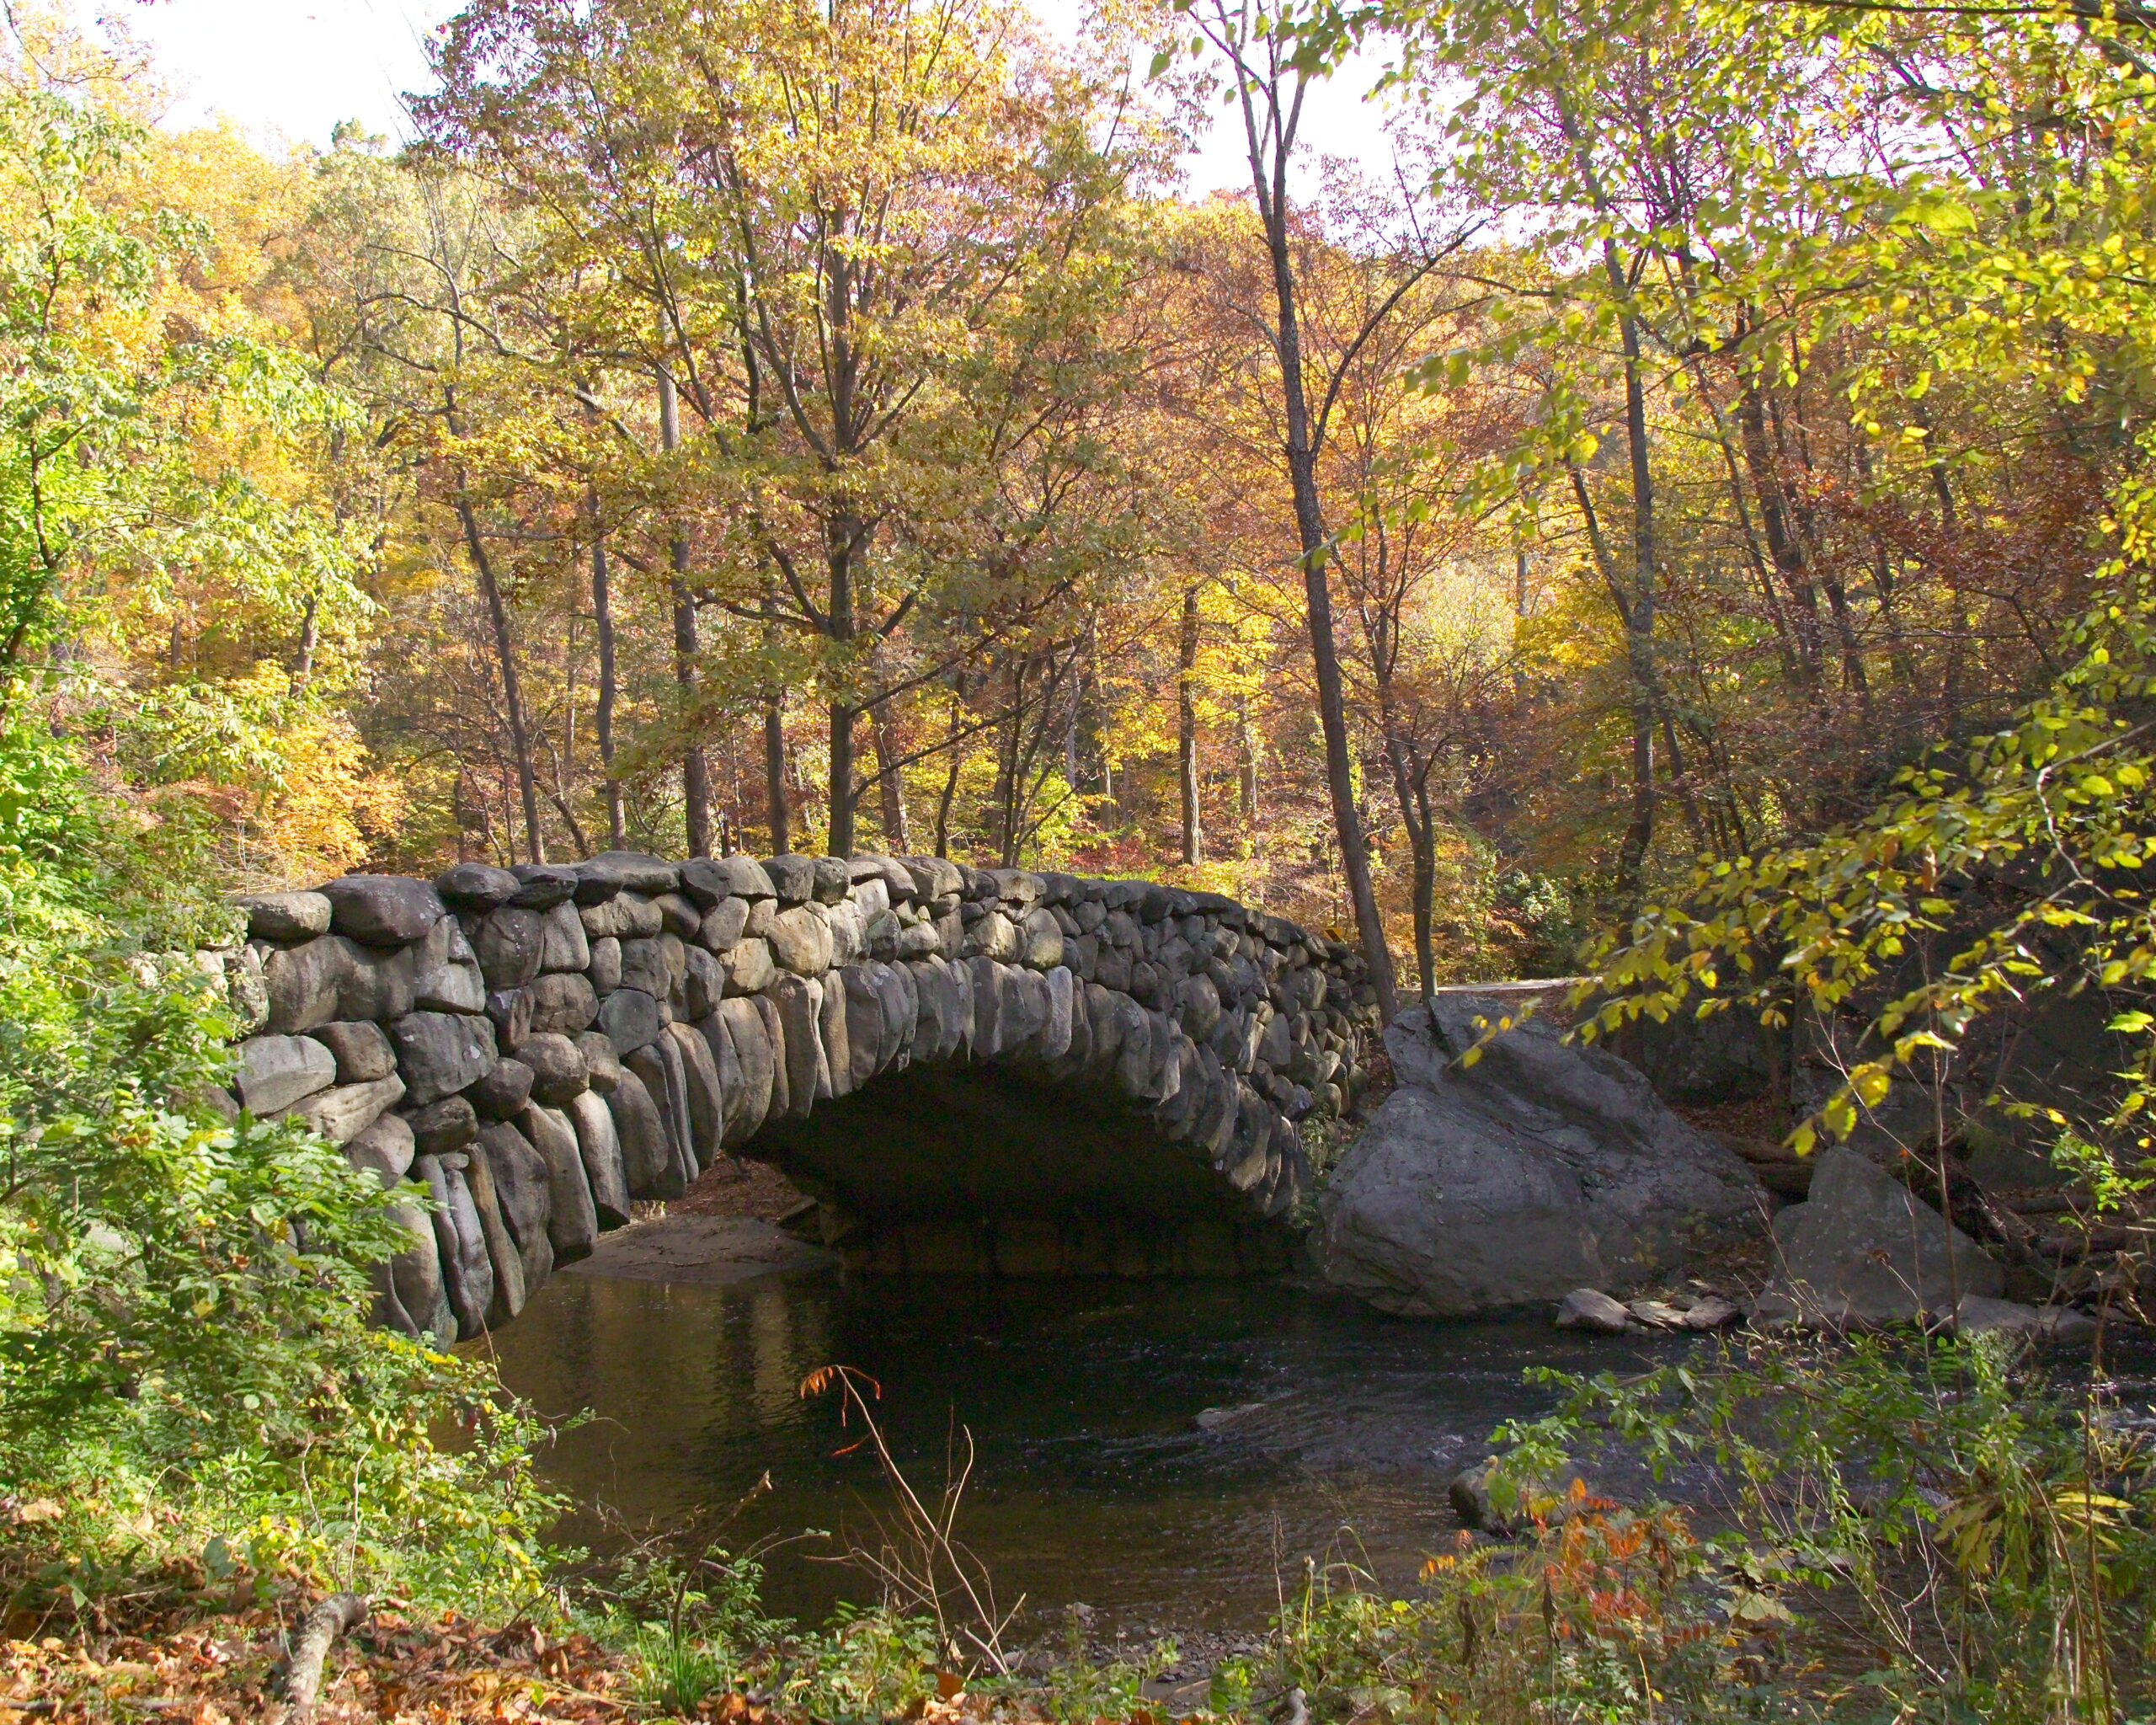 Boulder Bridge over Rock Creek on an early fall day.